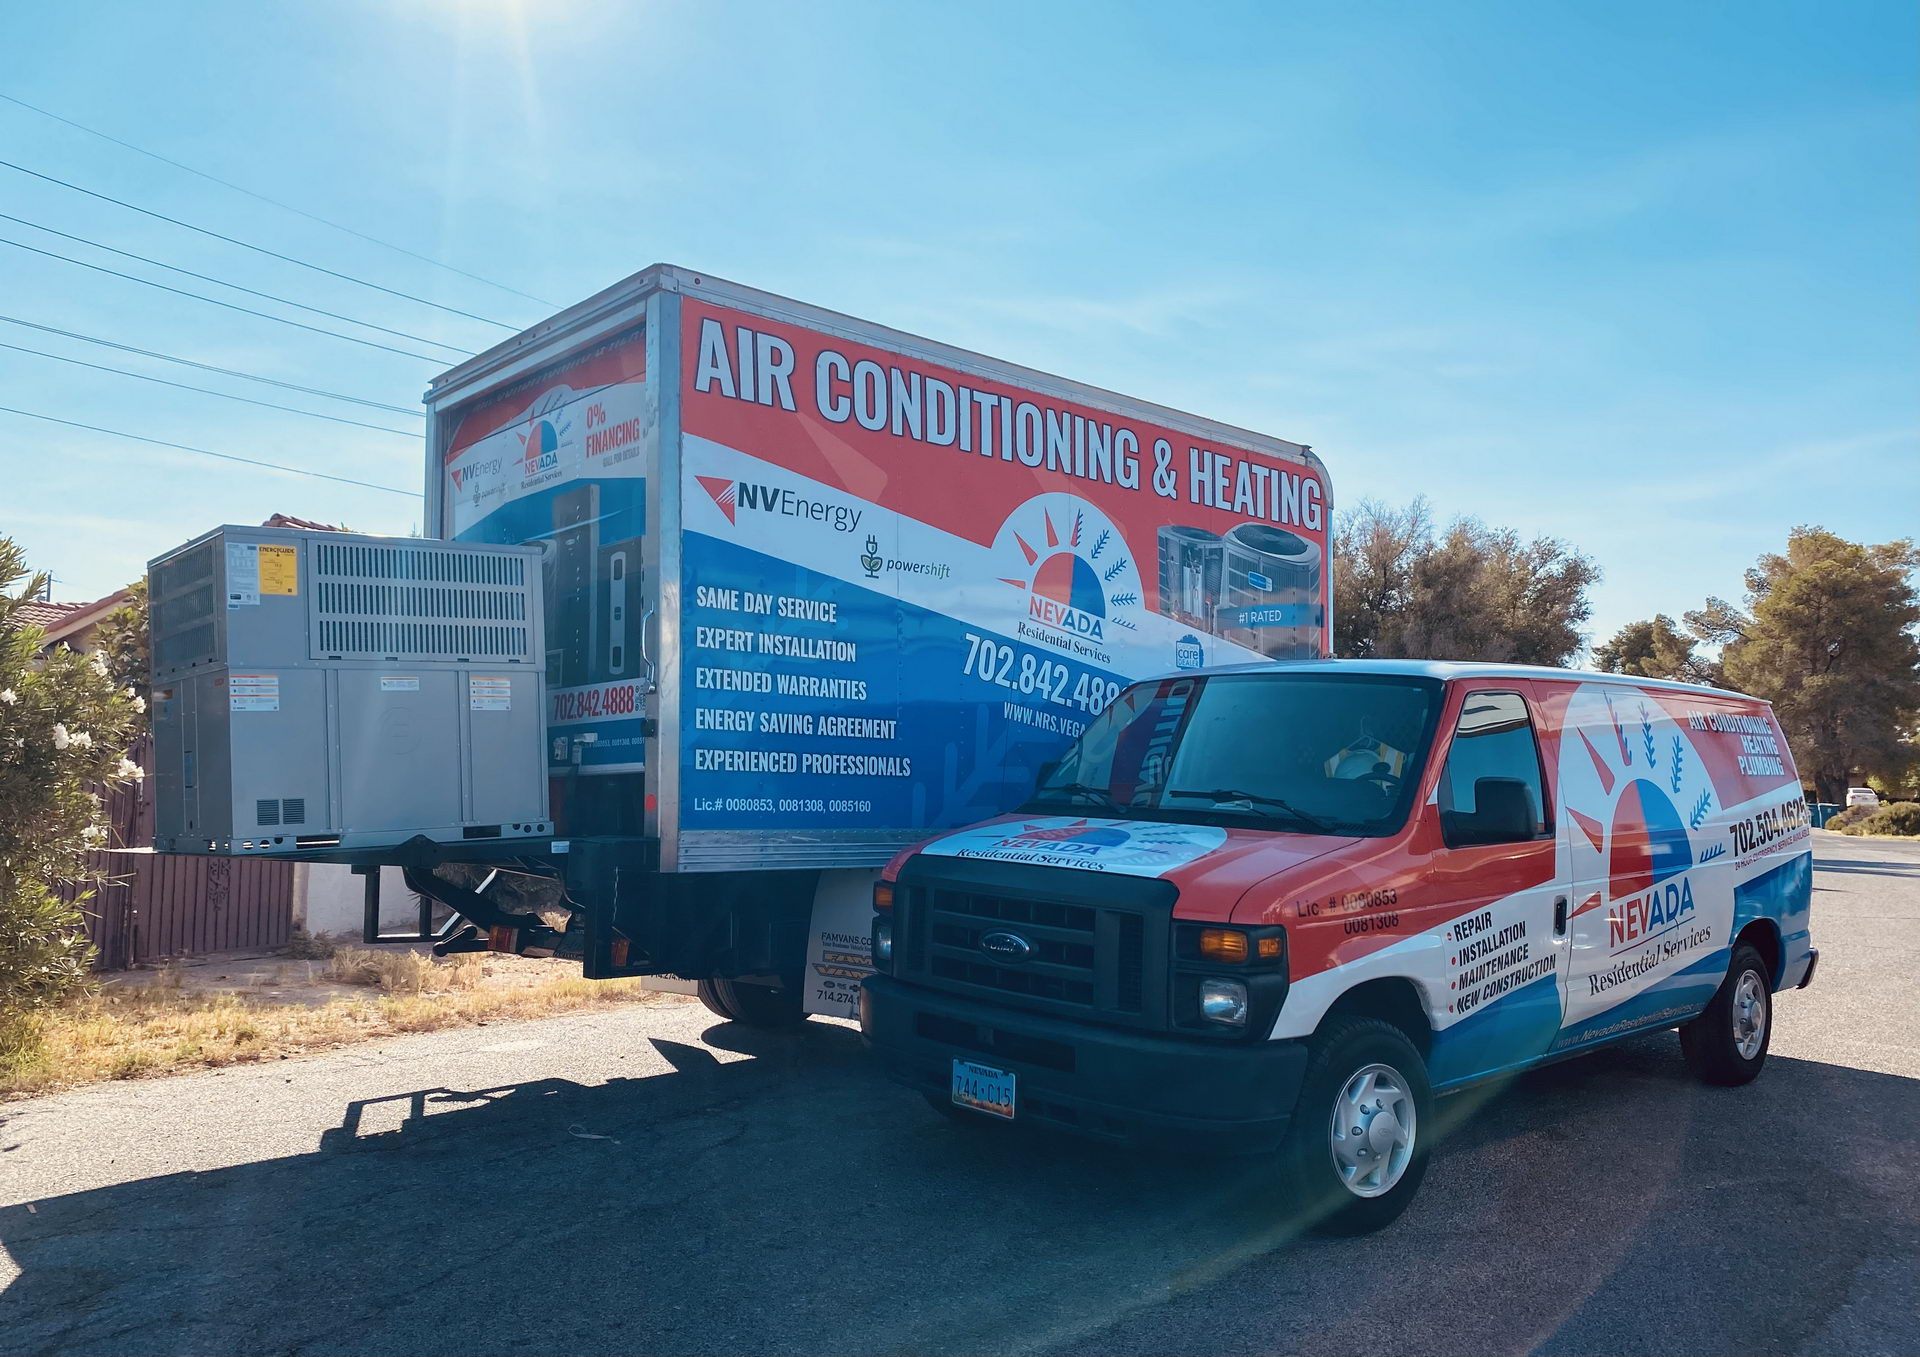 Reliable HVAC Services in Las Vegas to ensure indoor comfort